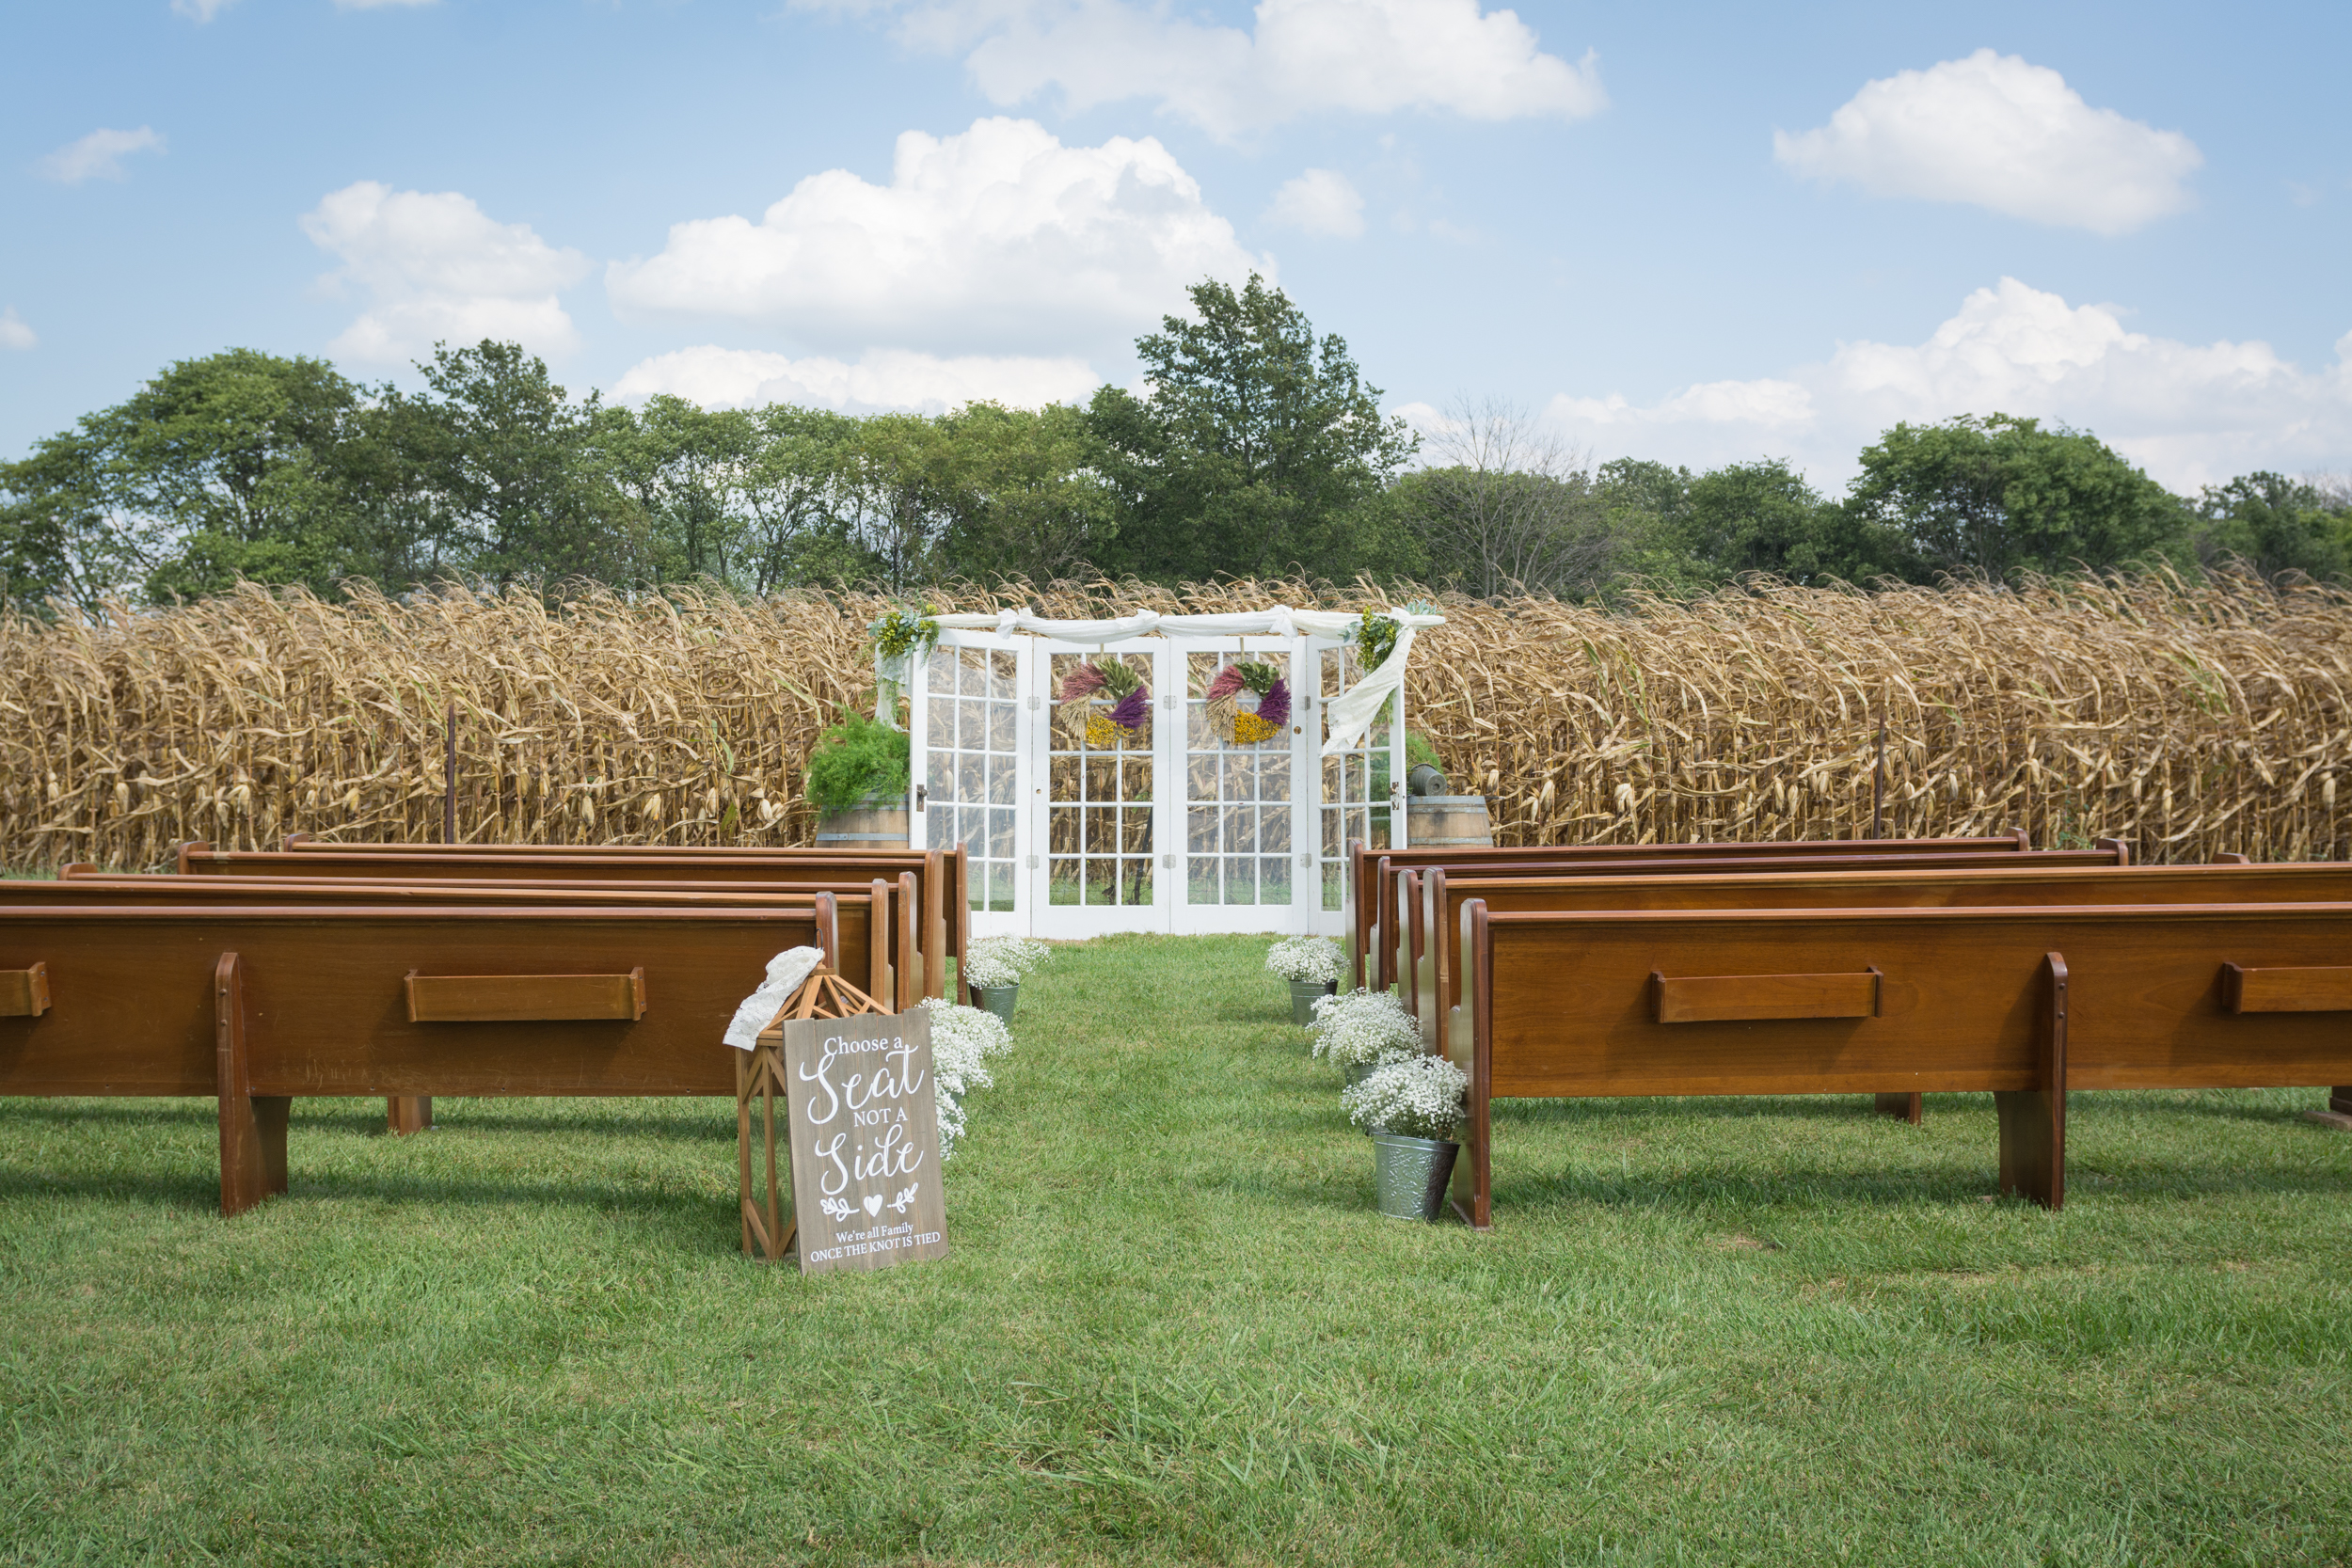 Life_by_pictures_photography dick wedding mount sterling ohio september_3.jpg